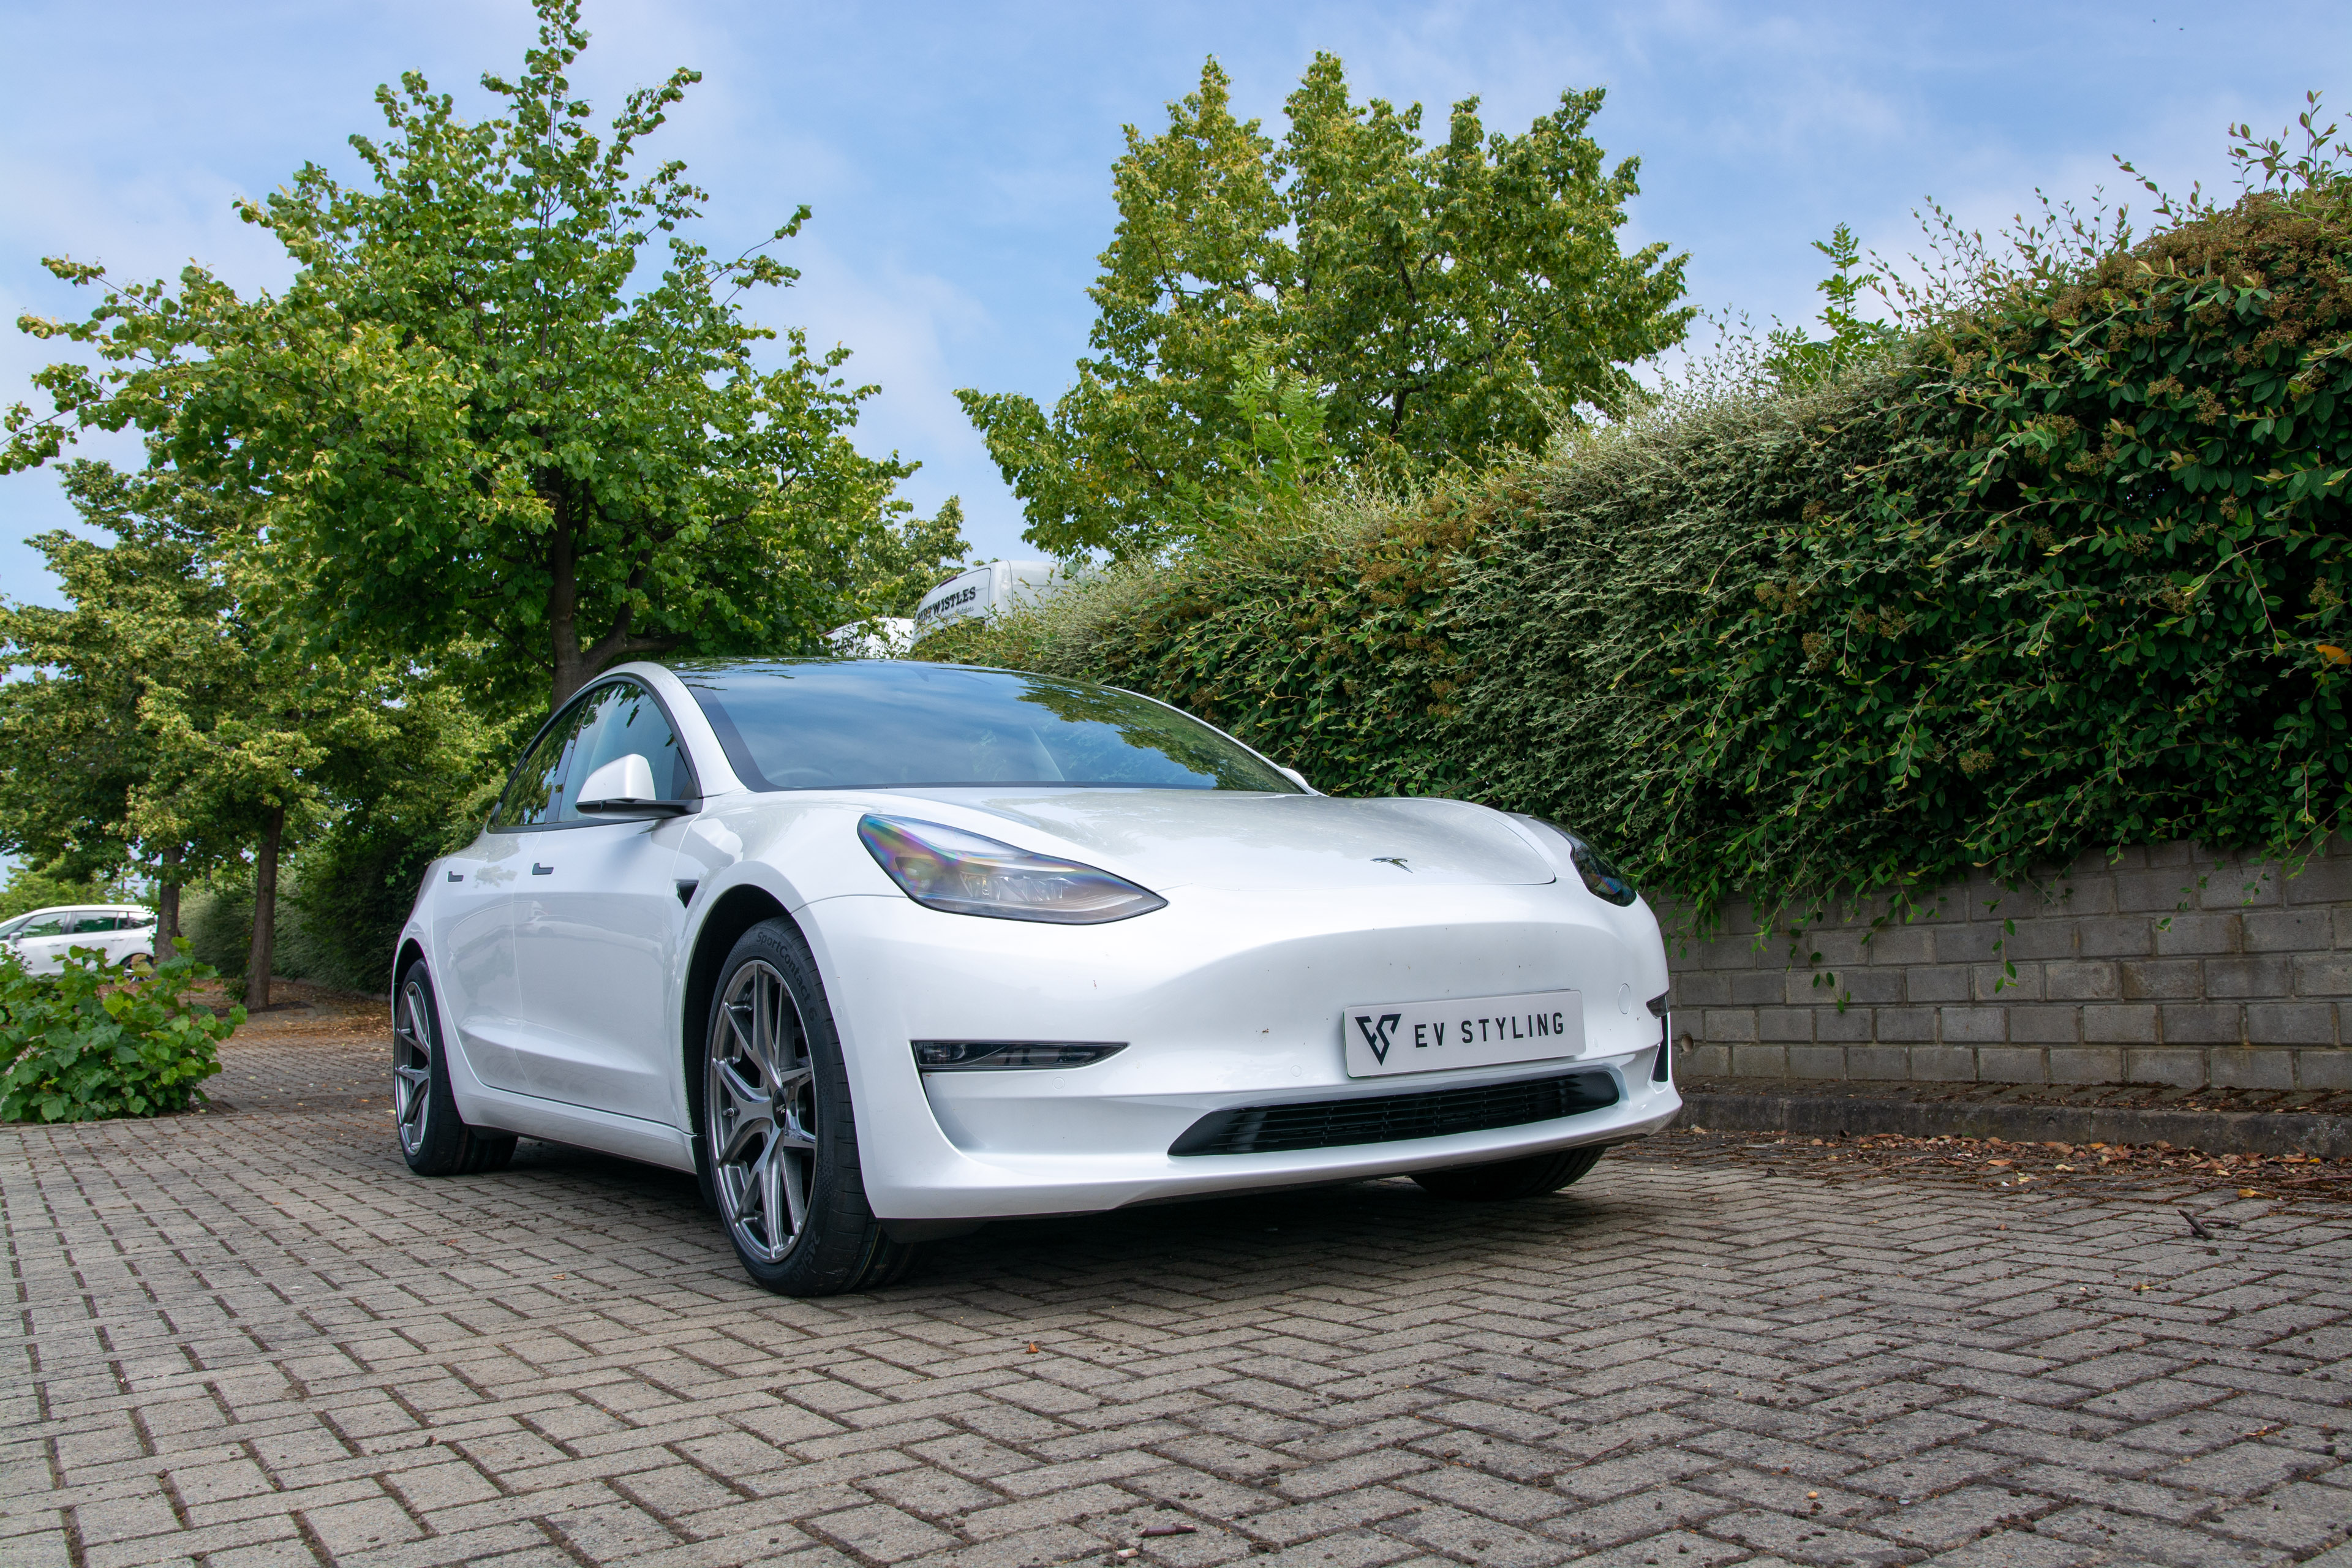 Styling for Electric Cars arrives in the UK